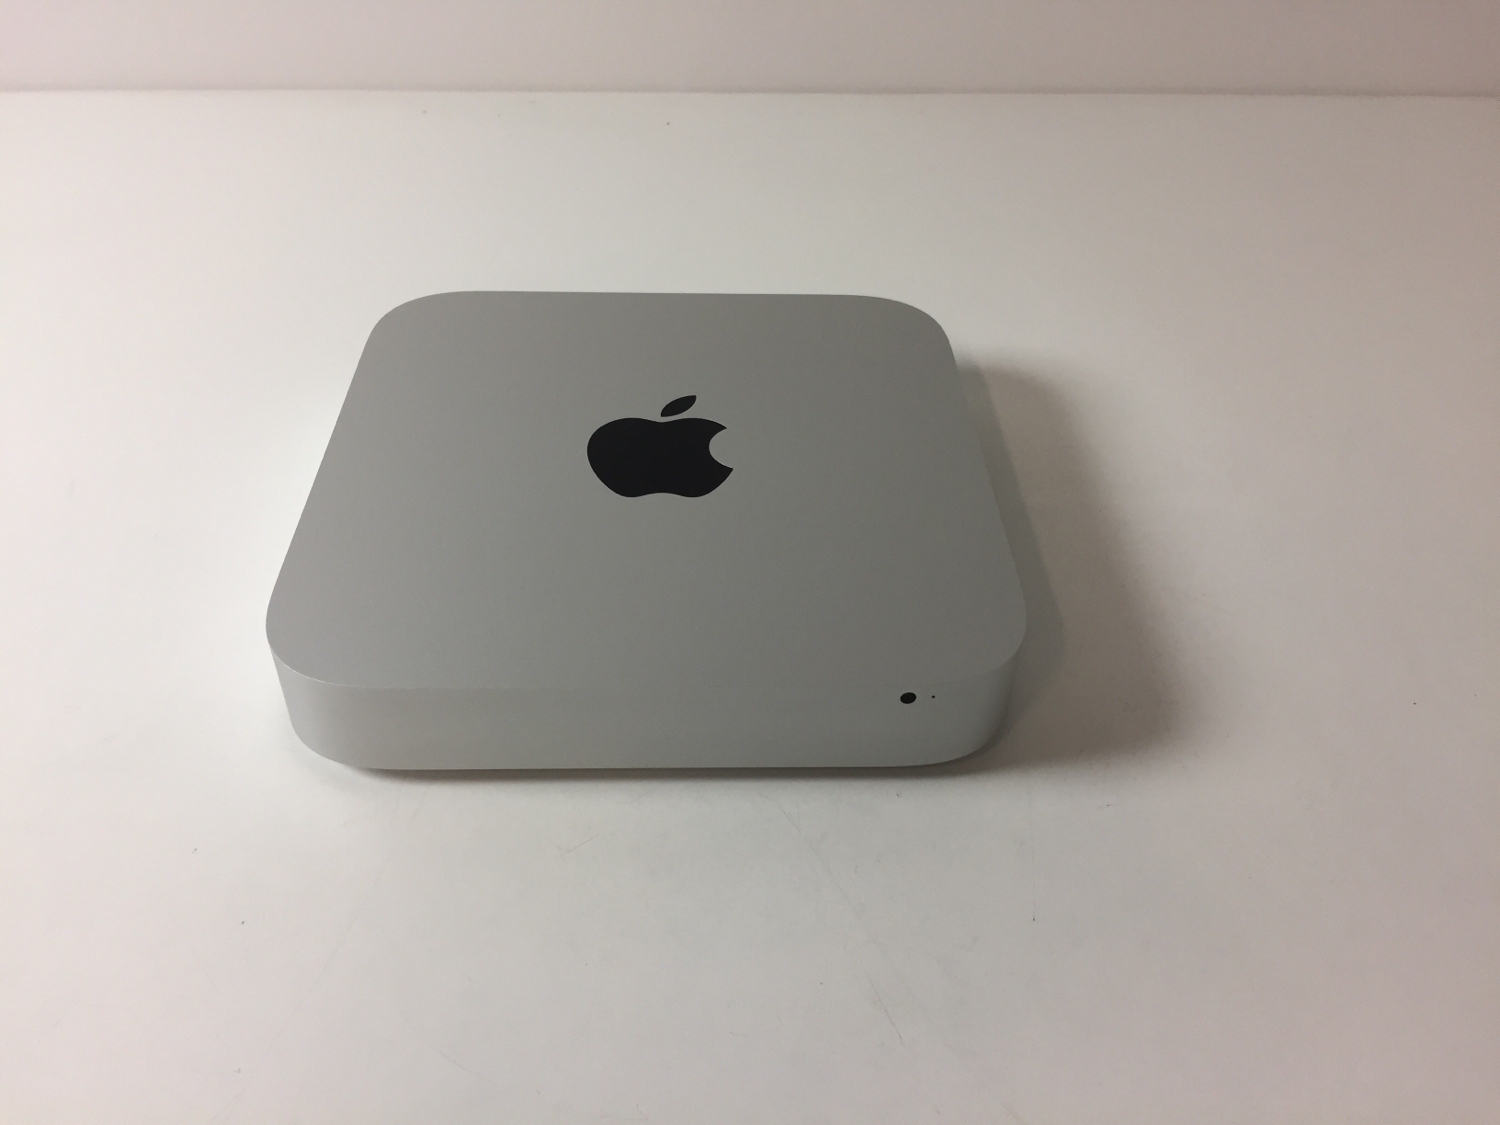 Mac Mini Late 2014 (Intel Core i5 1.4 GHz 4 GB RAM 500 GB HDD), Intel Core i5 1.4 GHz, 4 GB RAM, 500 GB HDD, Kuva 1